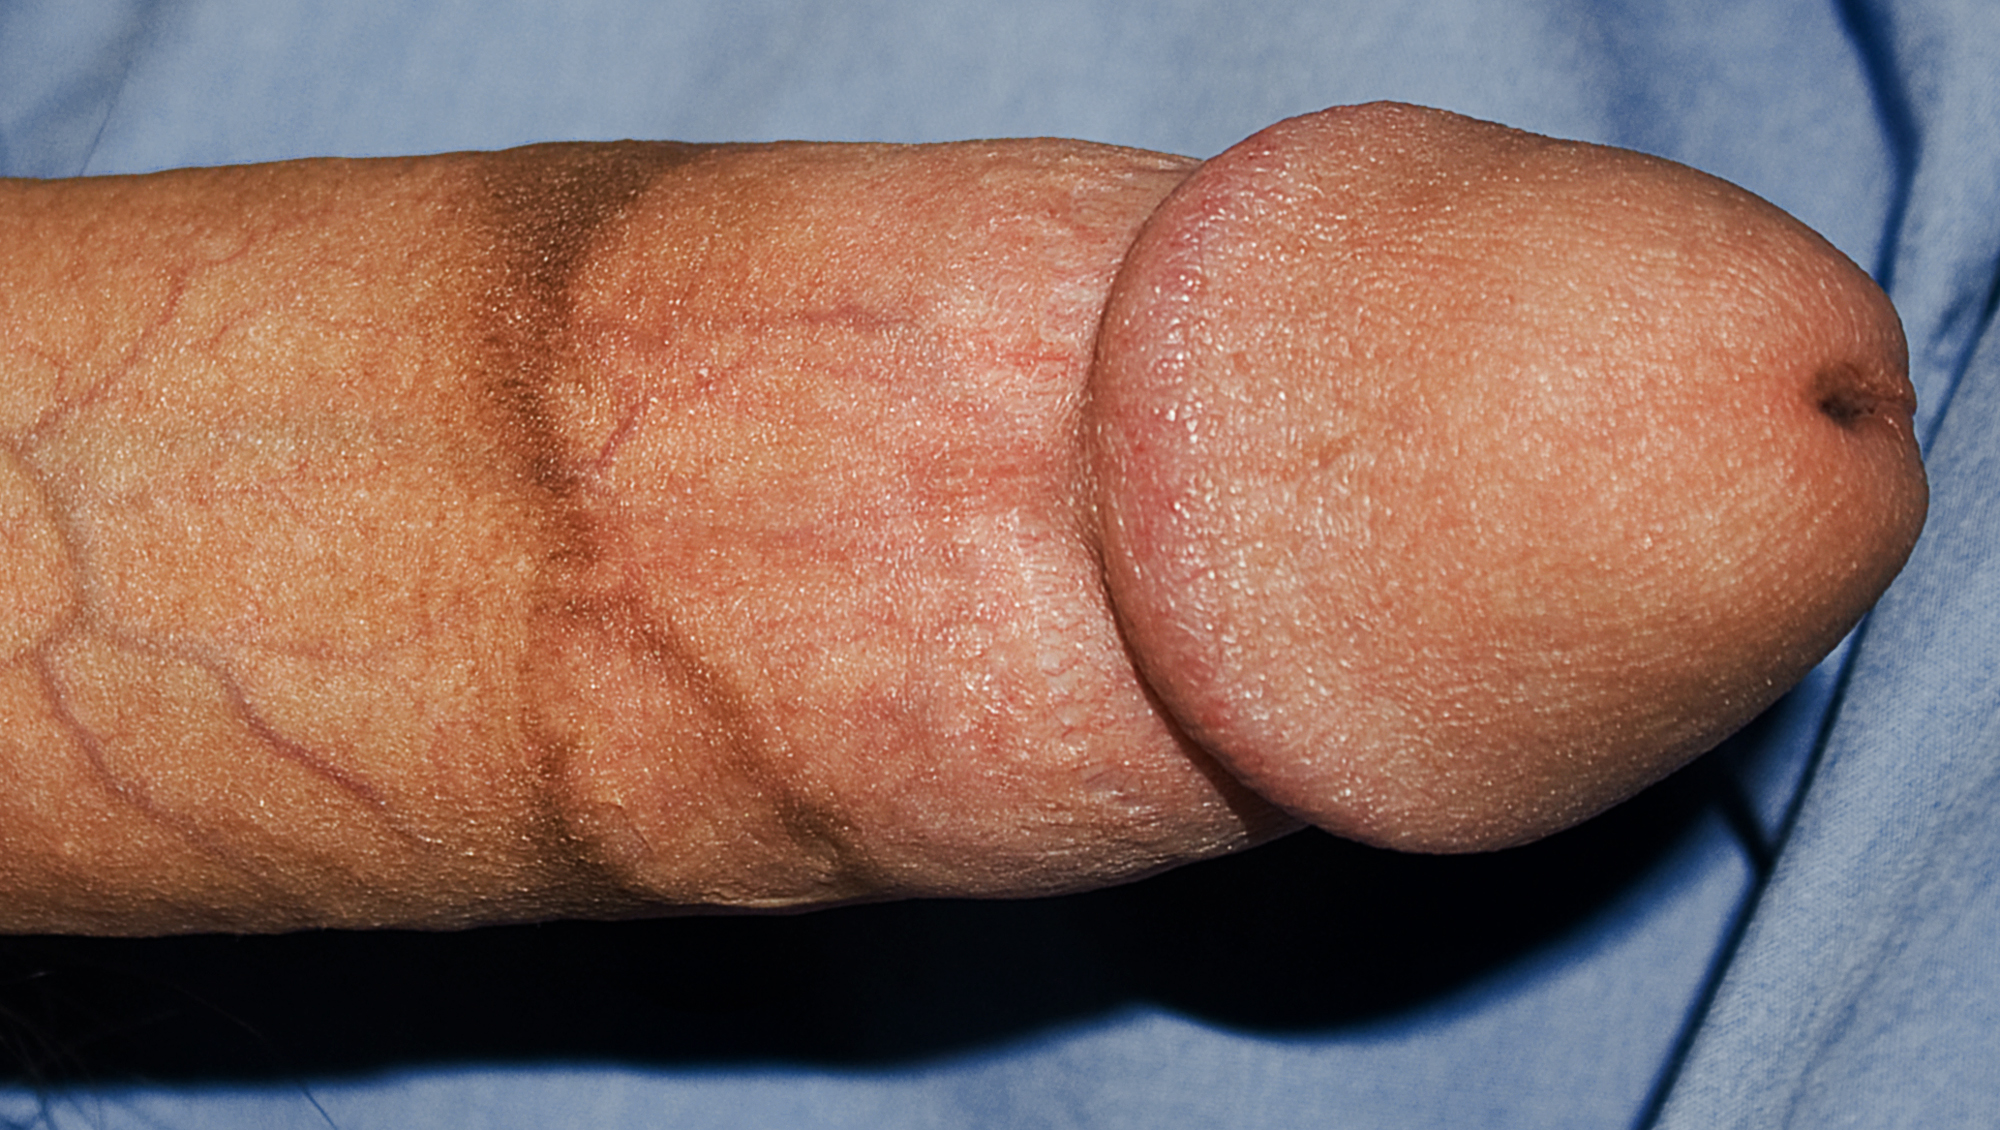 Circumcision scar on penis many